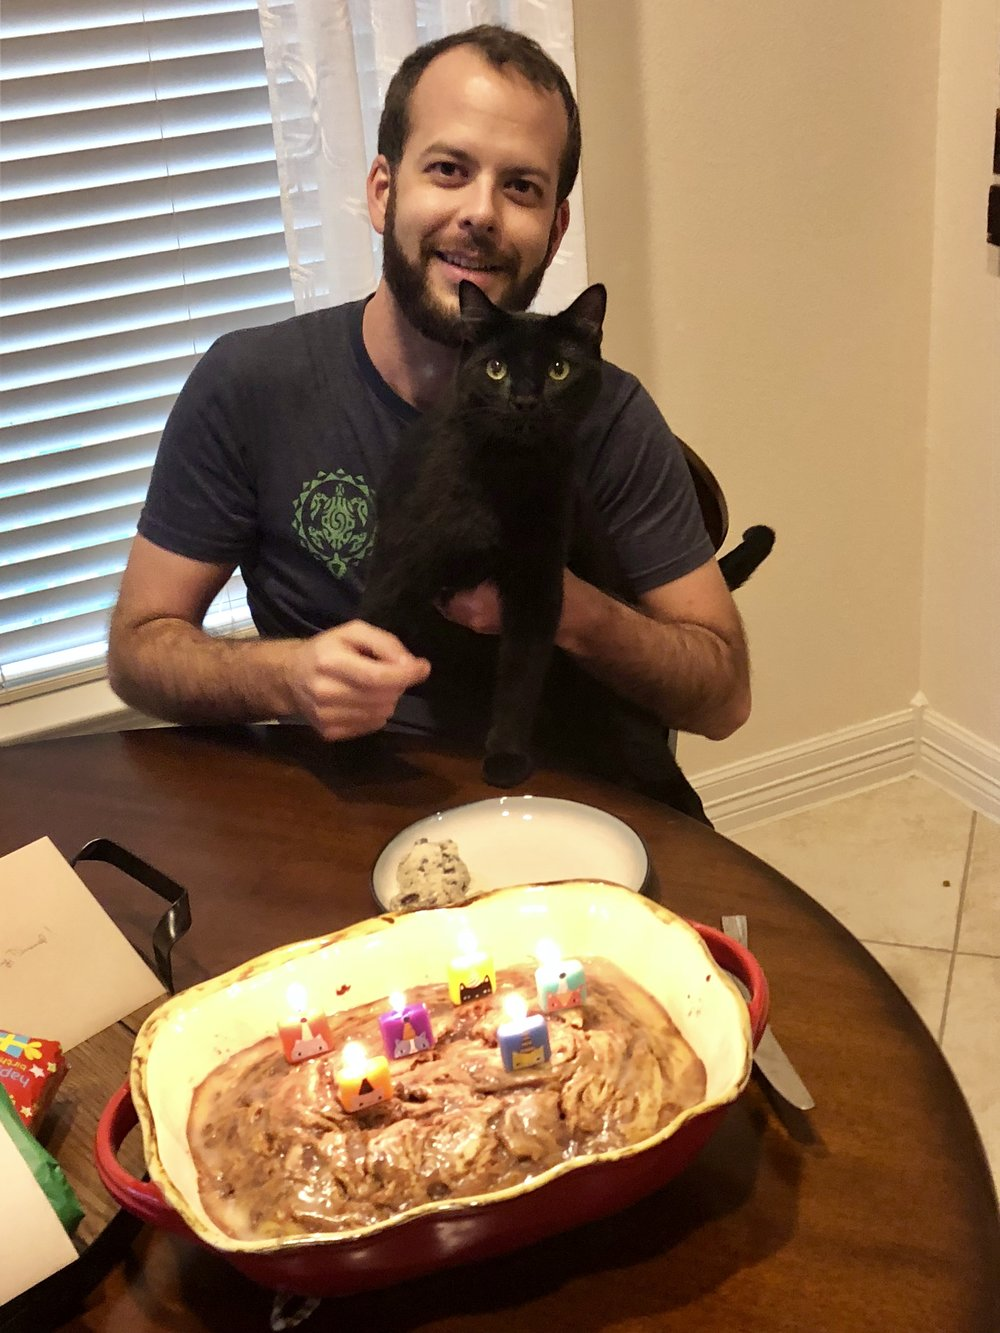 Daniel enjoying his cake with our cat Gryff